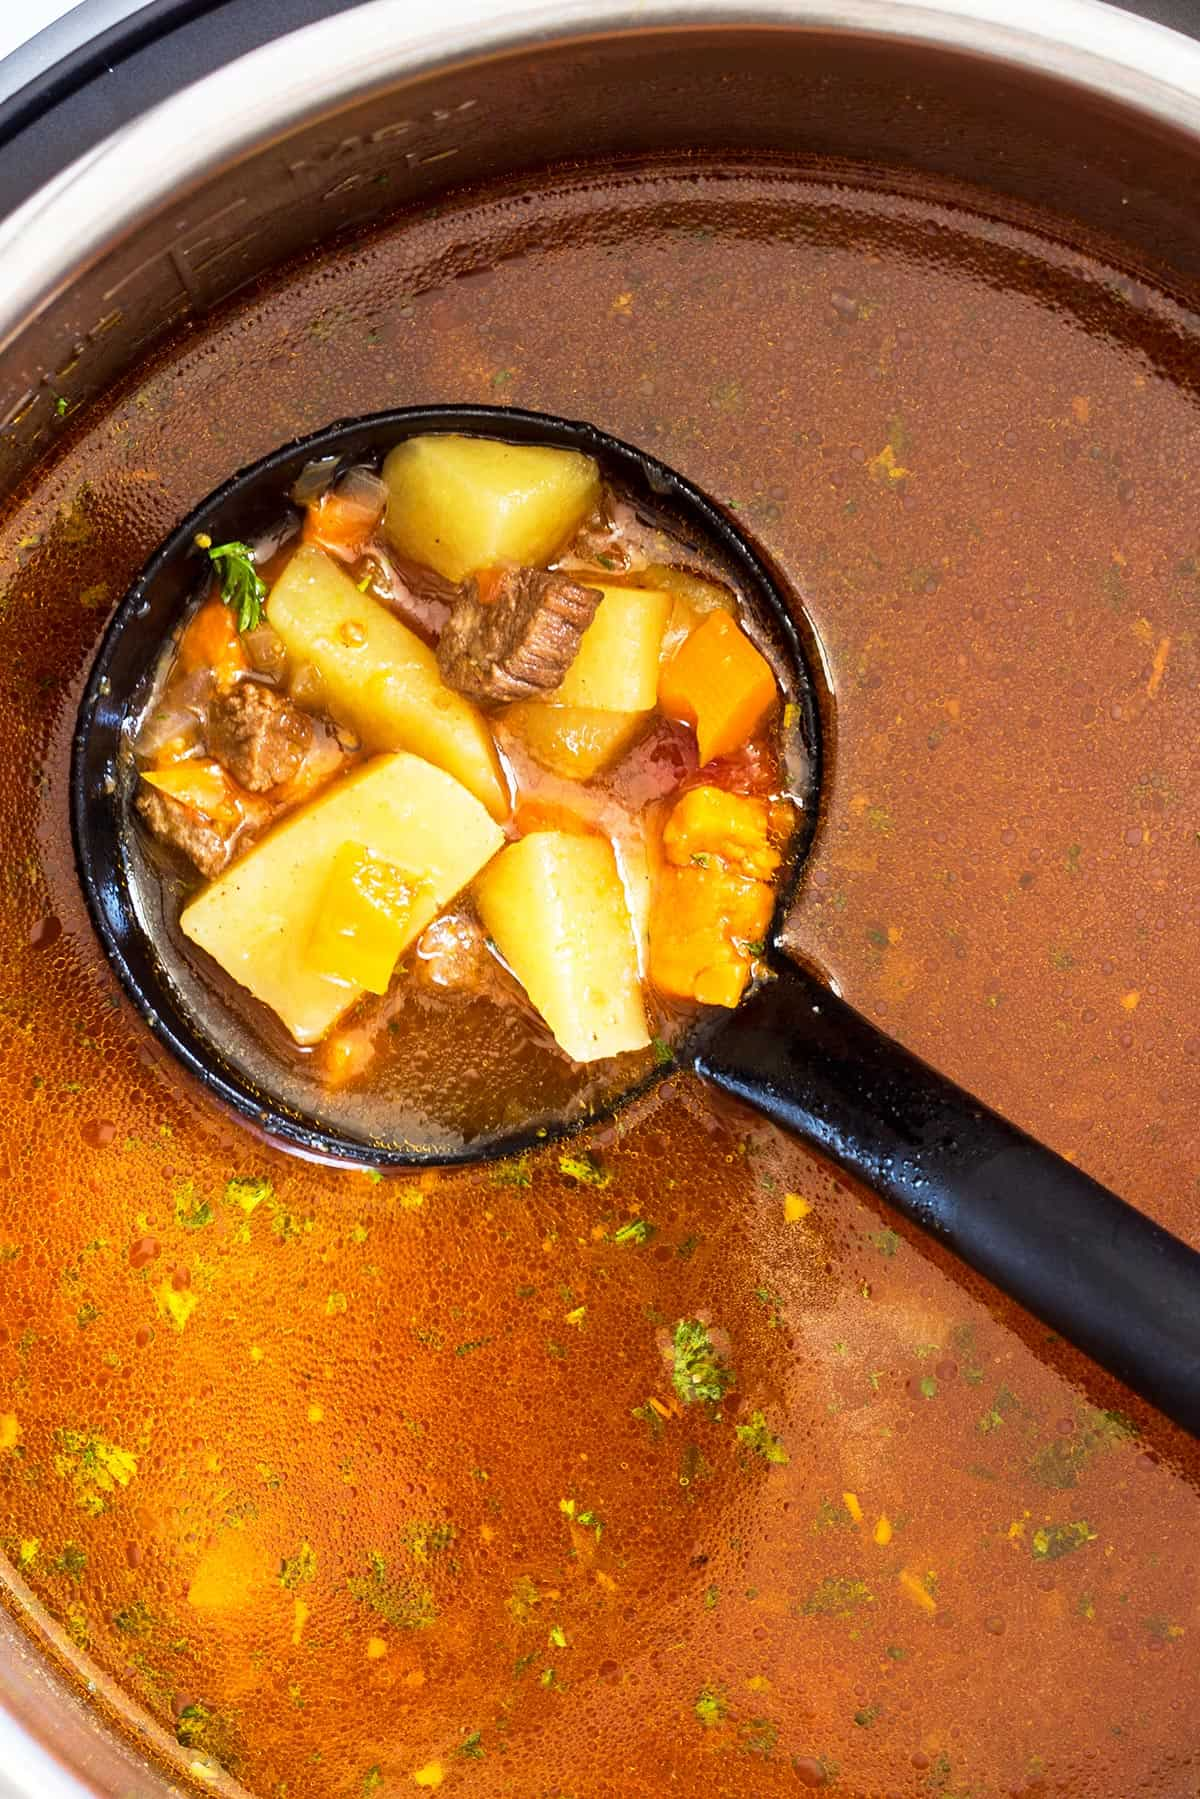 Ladle full of Vegetable Beef Soup